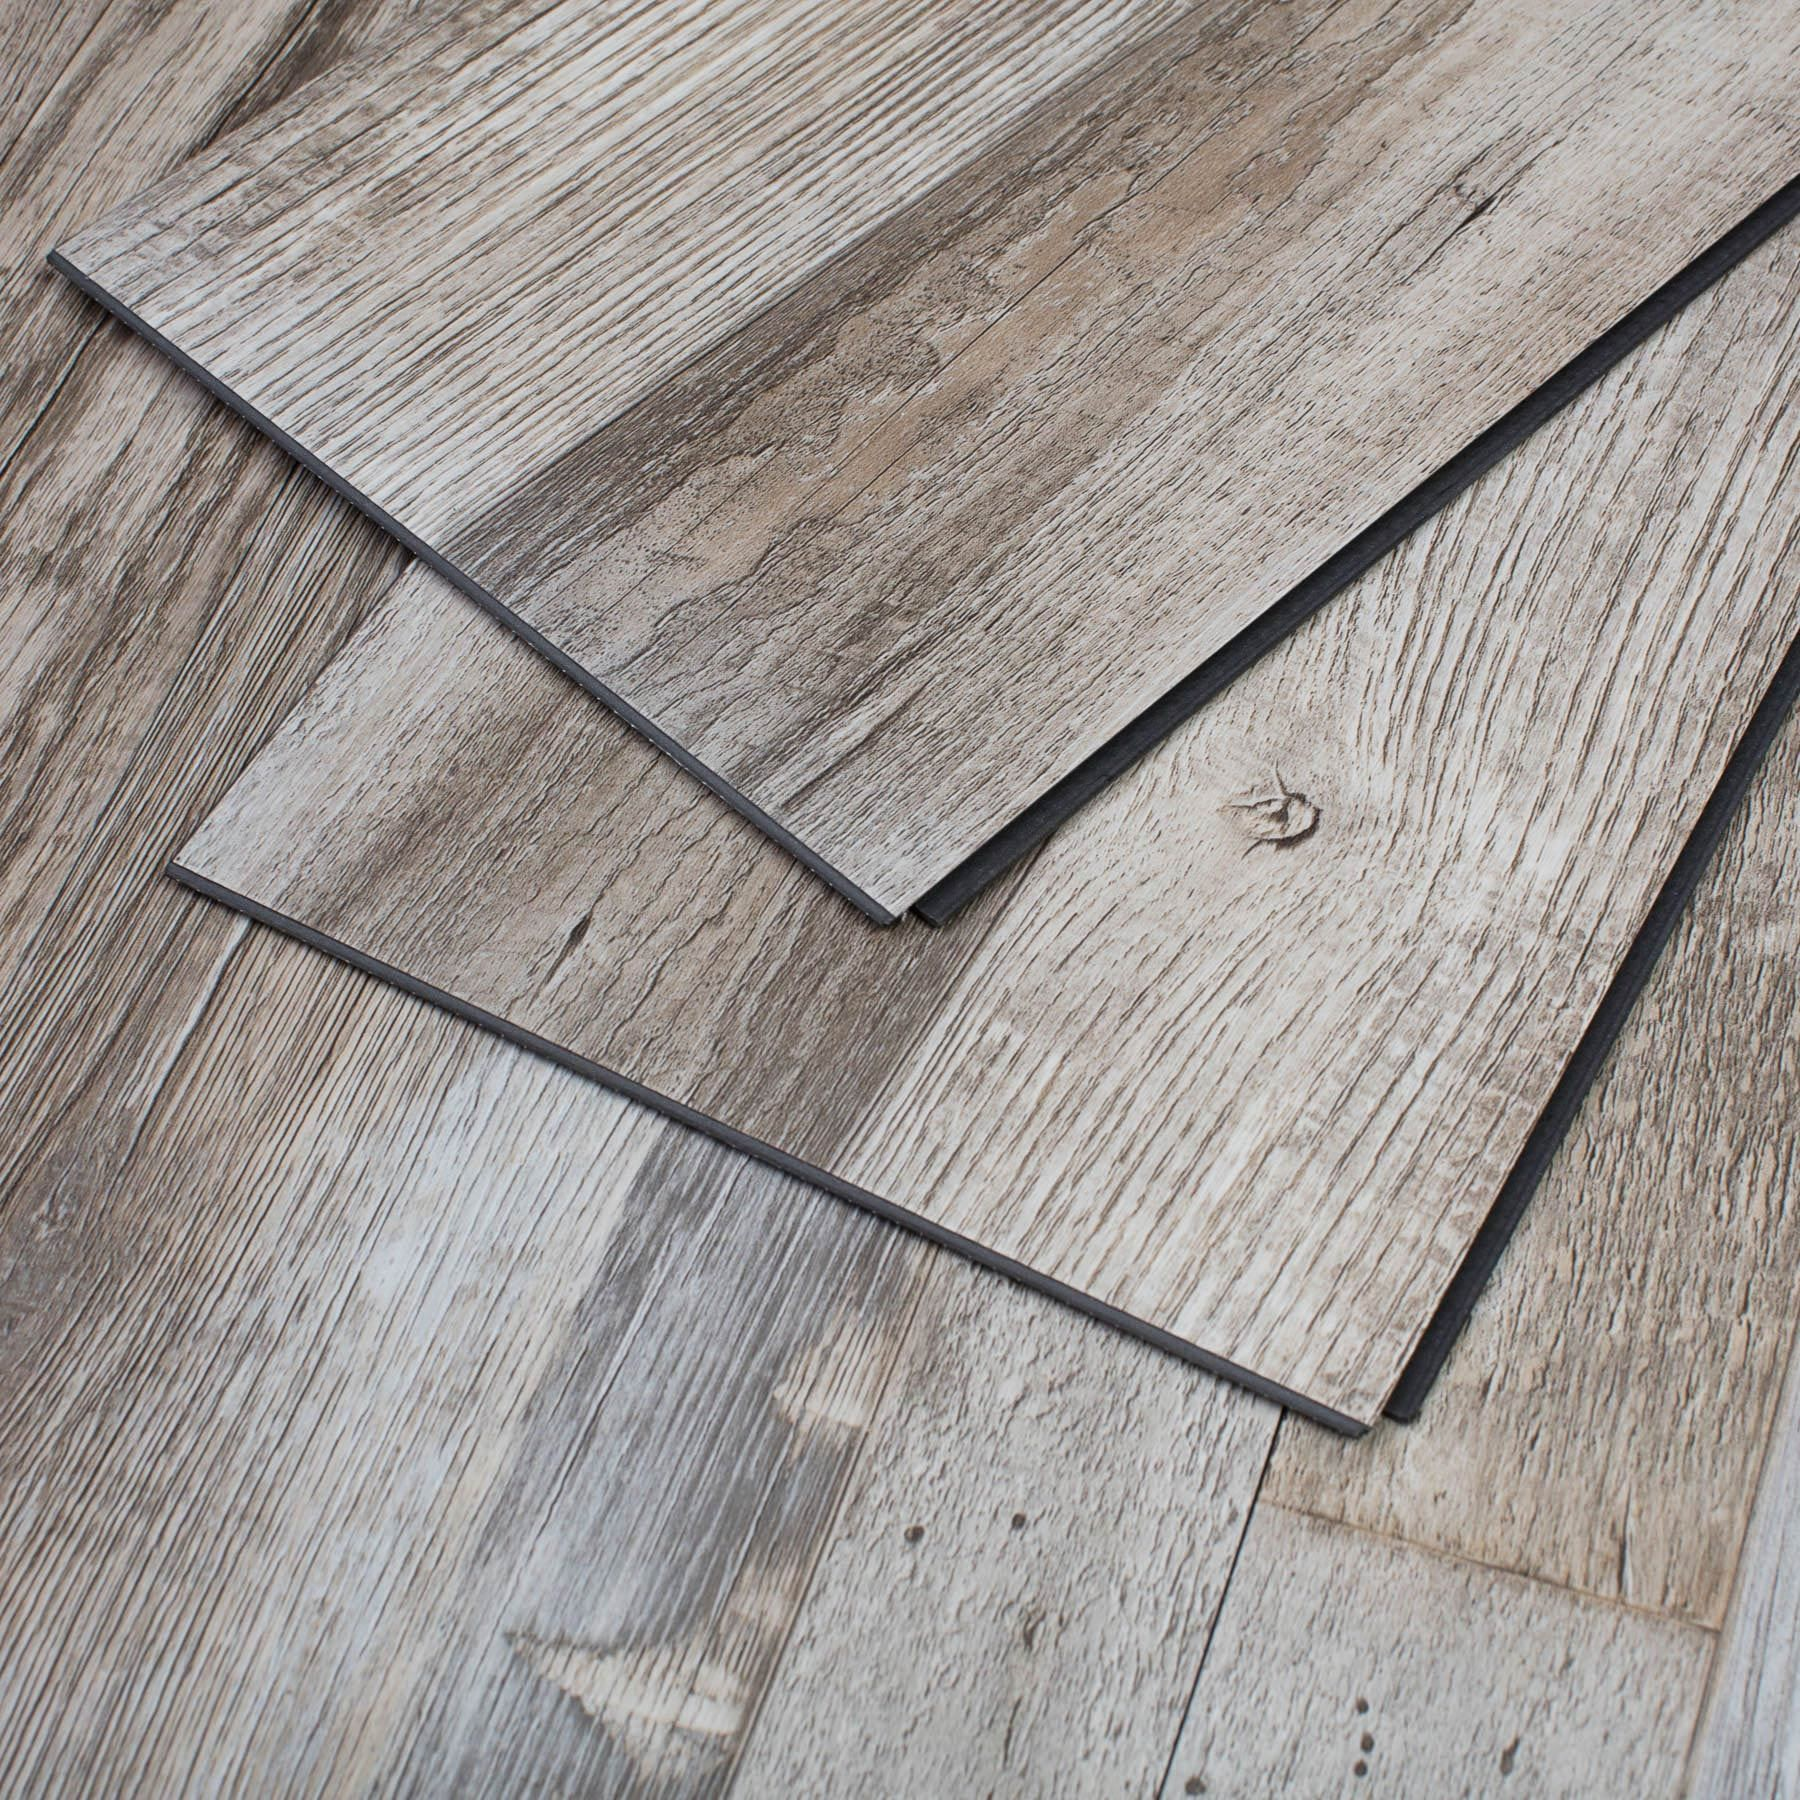 Vinyl Interlocking Plank Flooring